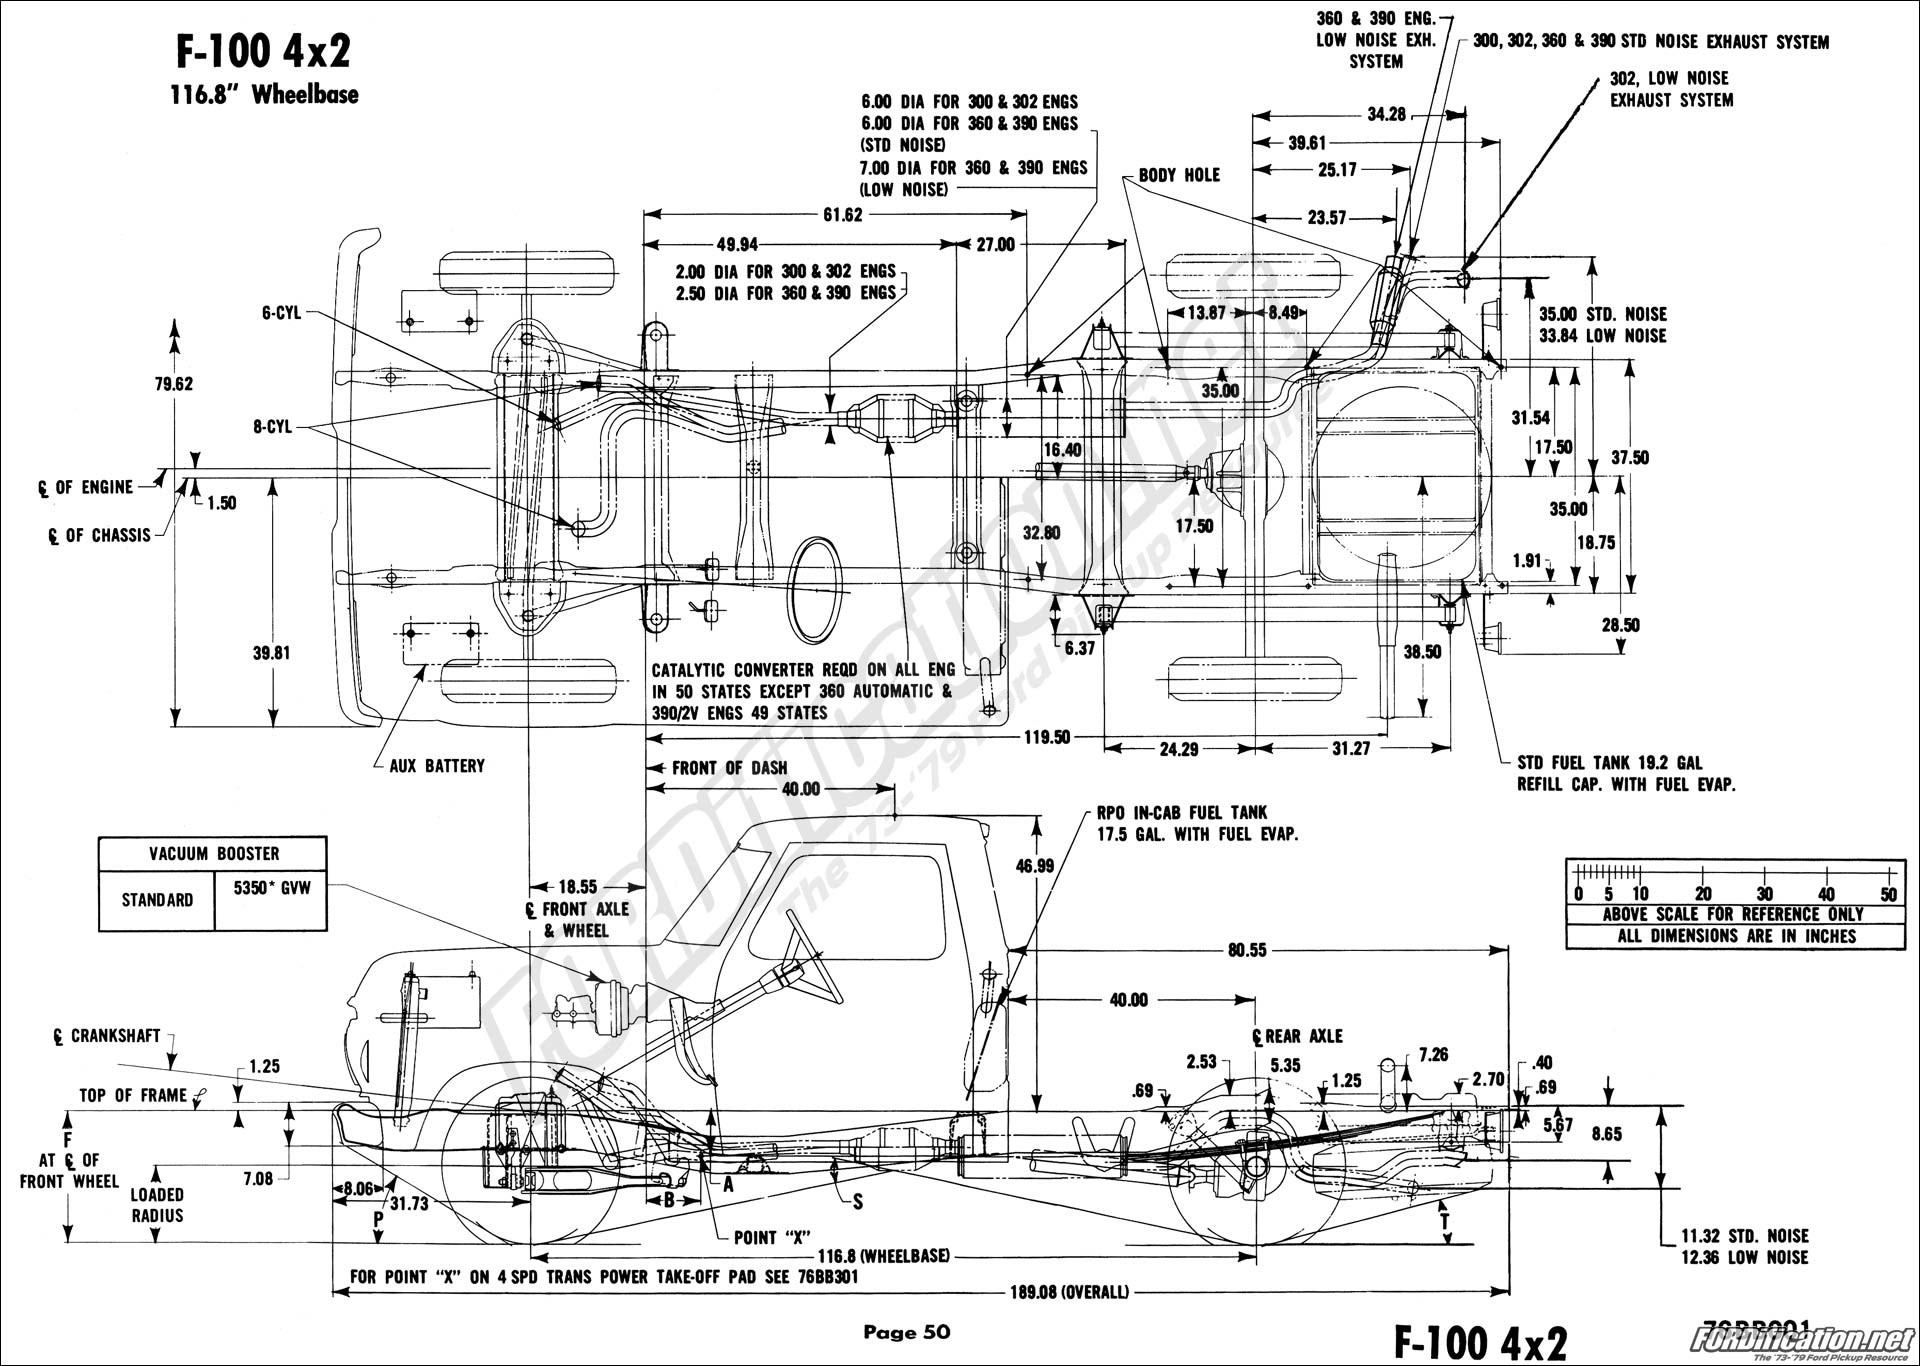 F150 Frame Diagram Simple Wiring Schema 2002 Ford F 150 Xl Fuse Measurements Truck Enthusiasts Forums 1997 Cab